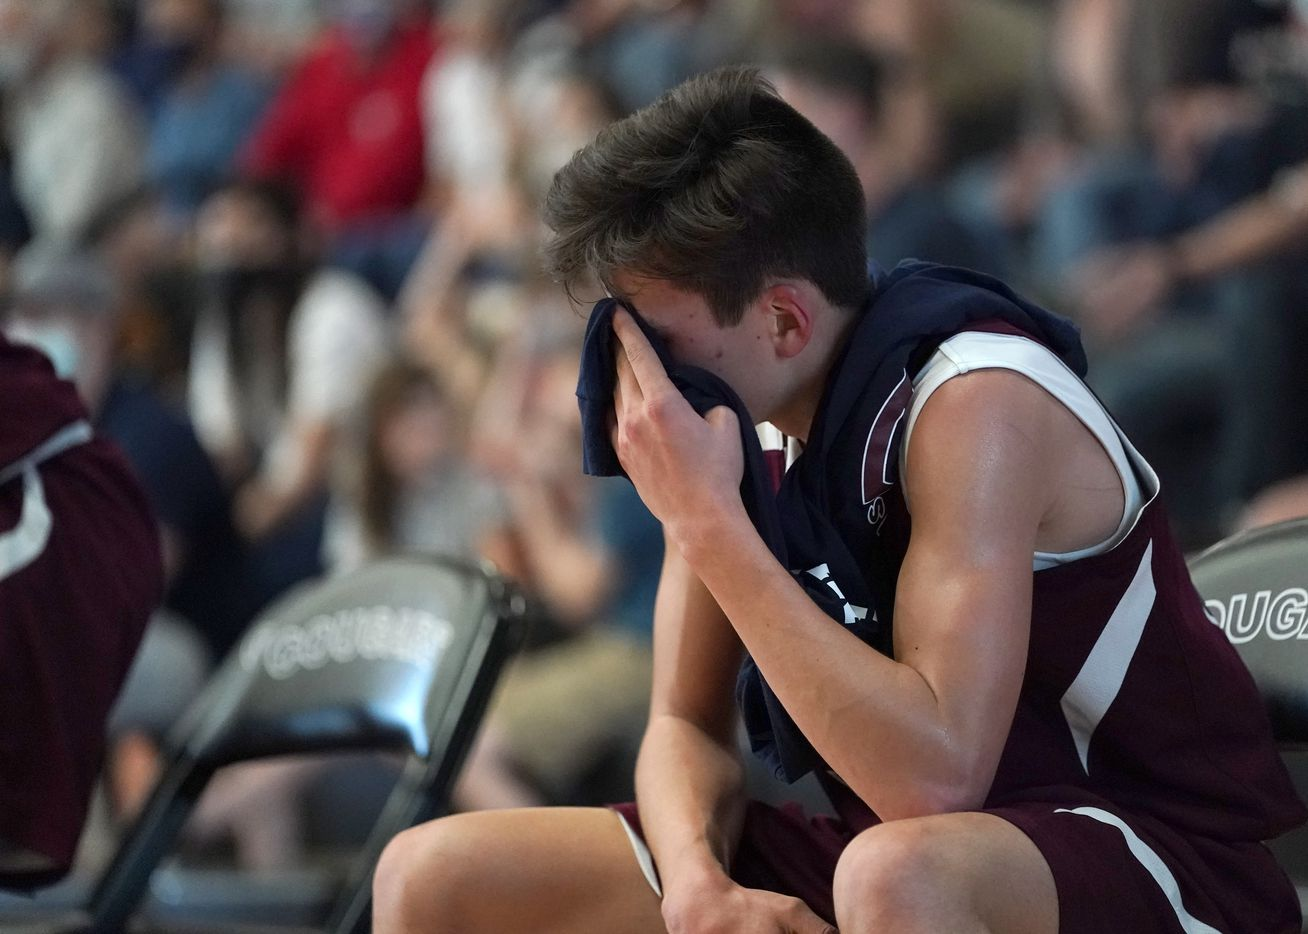 Irving Faustina's Ben Nelson (33) covers his face after coming off the court late in the fourth quarter against Cypress Covenan during the TAPPS 1A boys basketball championship game at College Station High School in College Station, Texas on Saturday, March 13, 2021. Faustina would go on to lose the game 50-37. (Sam Craft/Special Contributor)